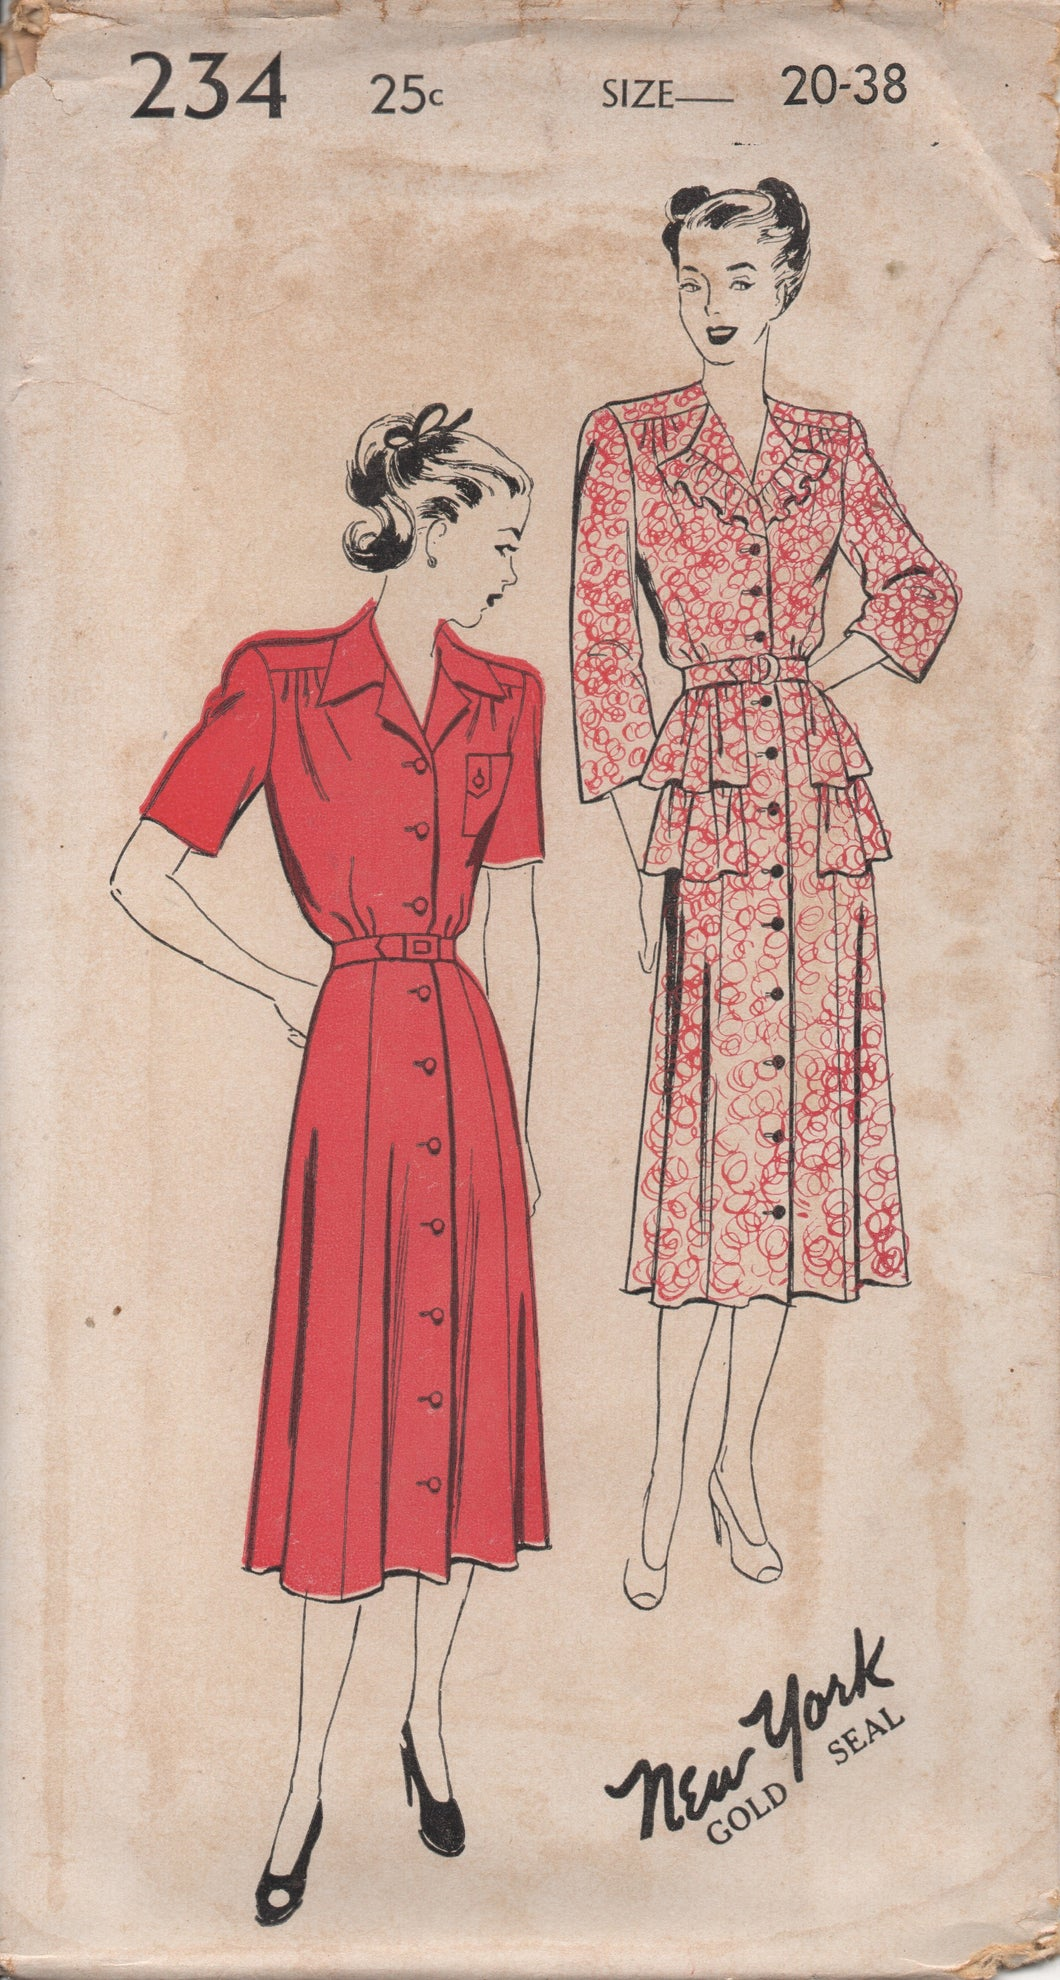 1940's New York One Piece Dress with Double Peplum and Two Sleeves lengths - Bust 38